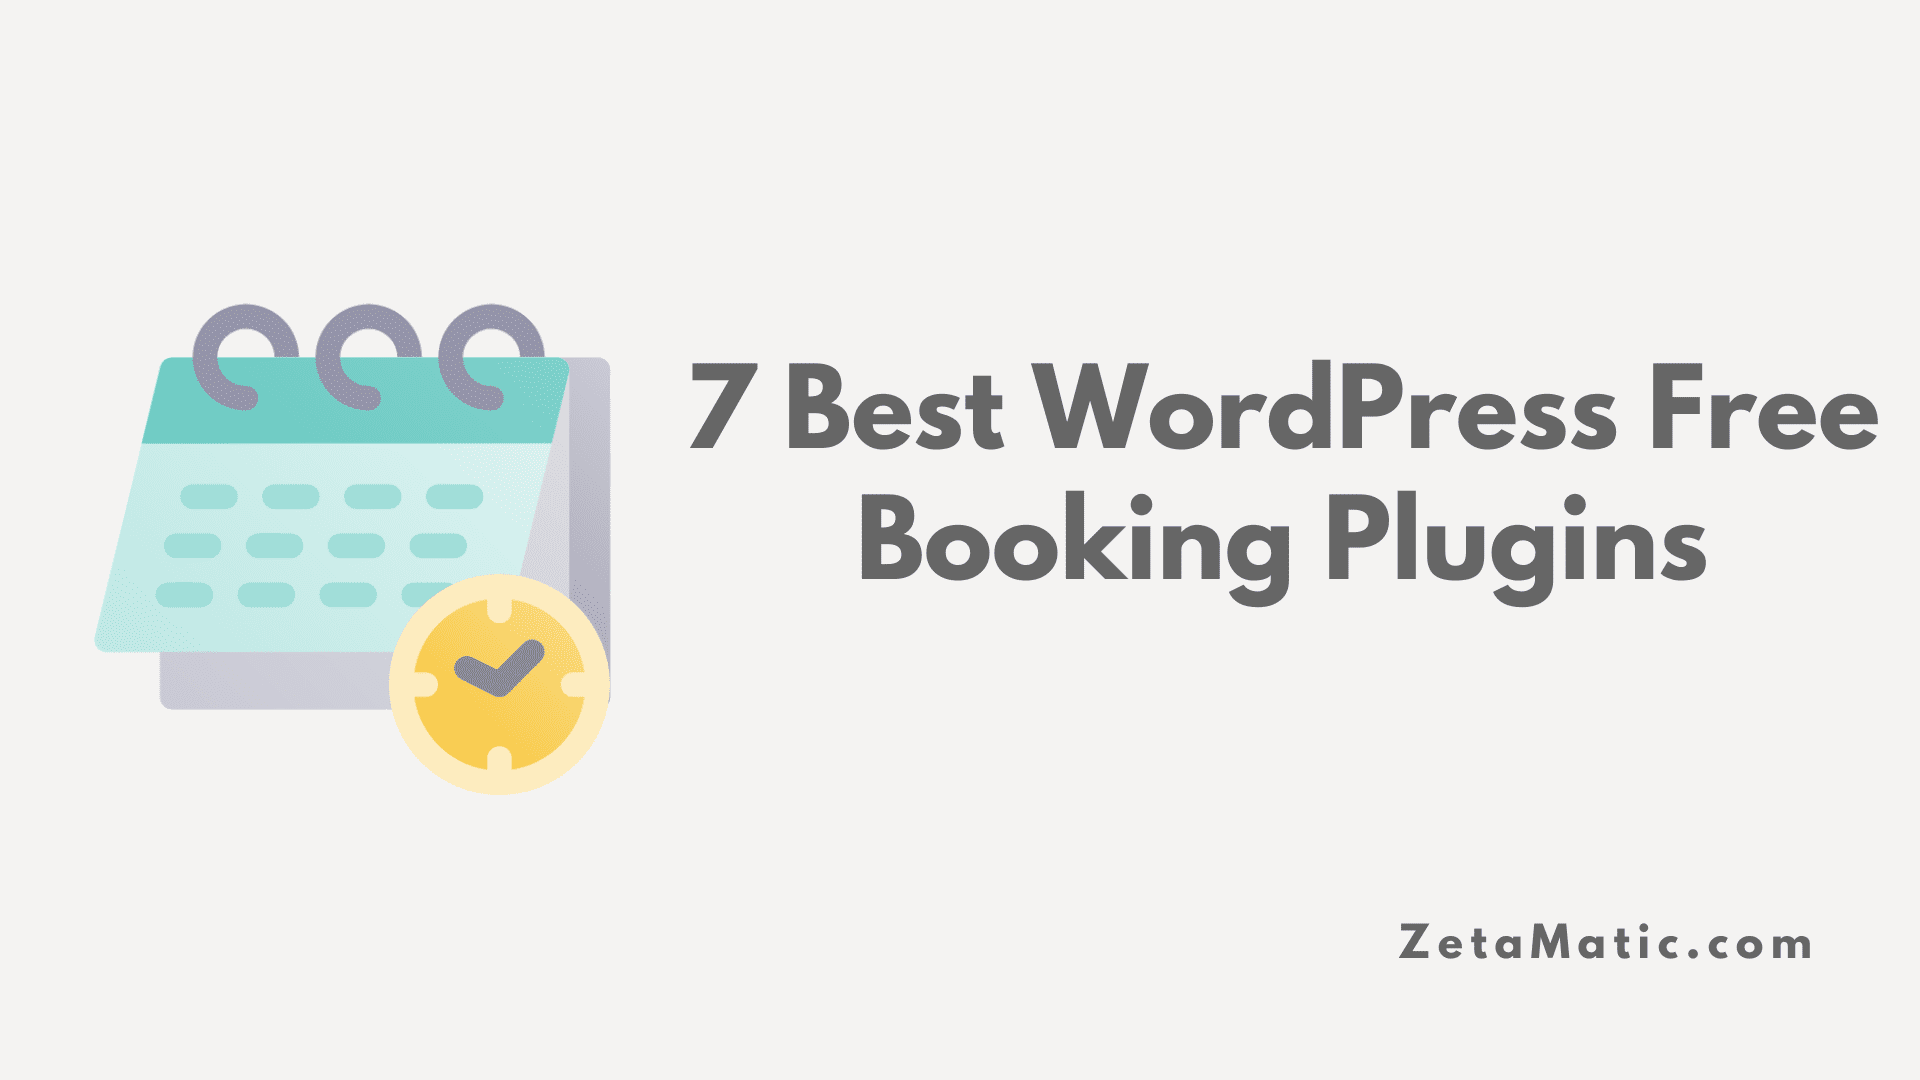 7 Best WordPress Free Booking Plugins